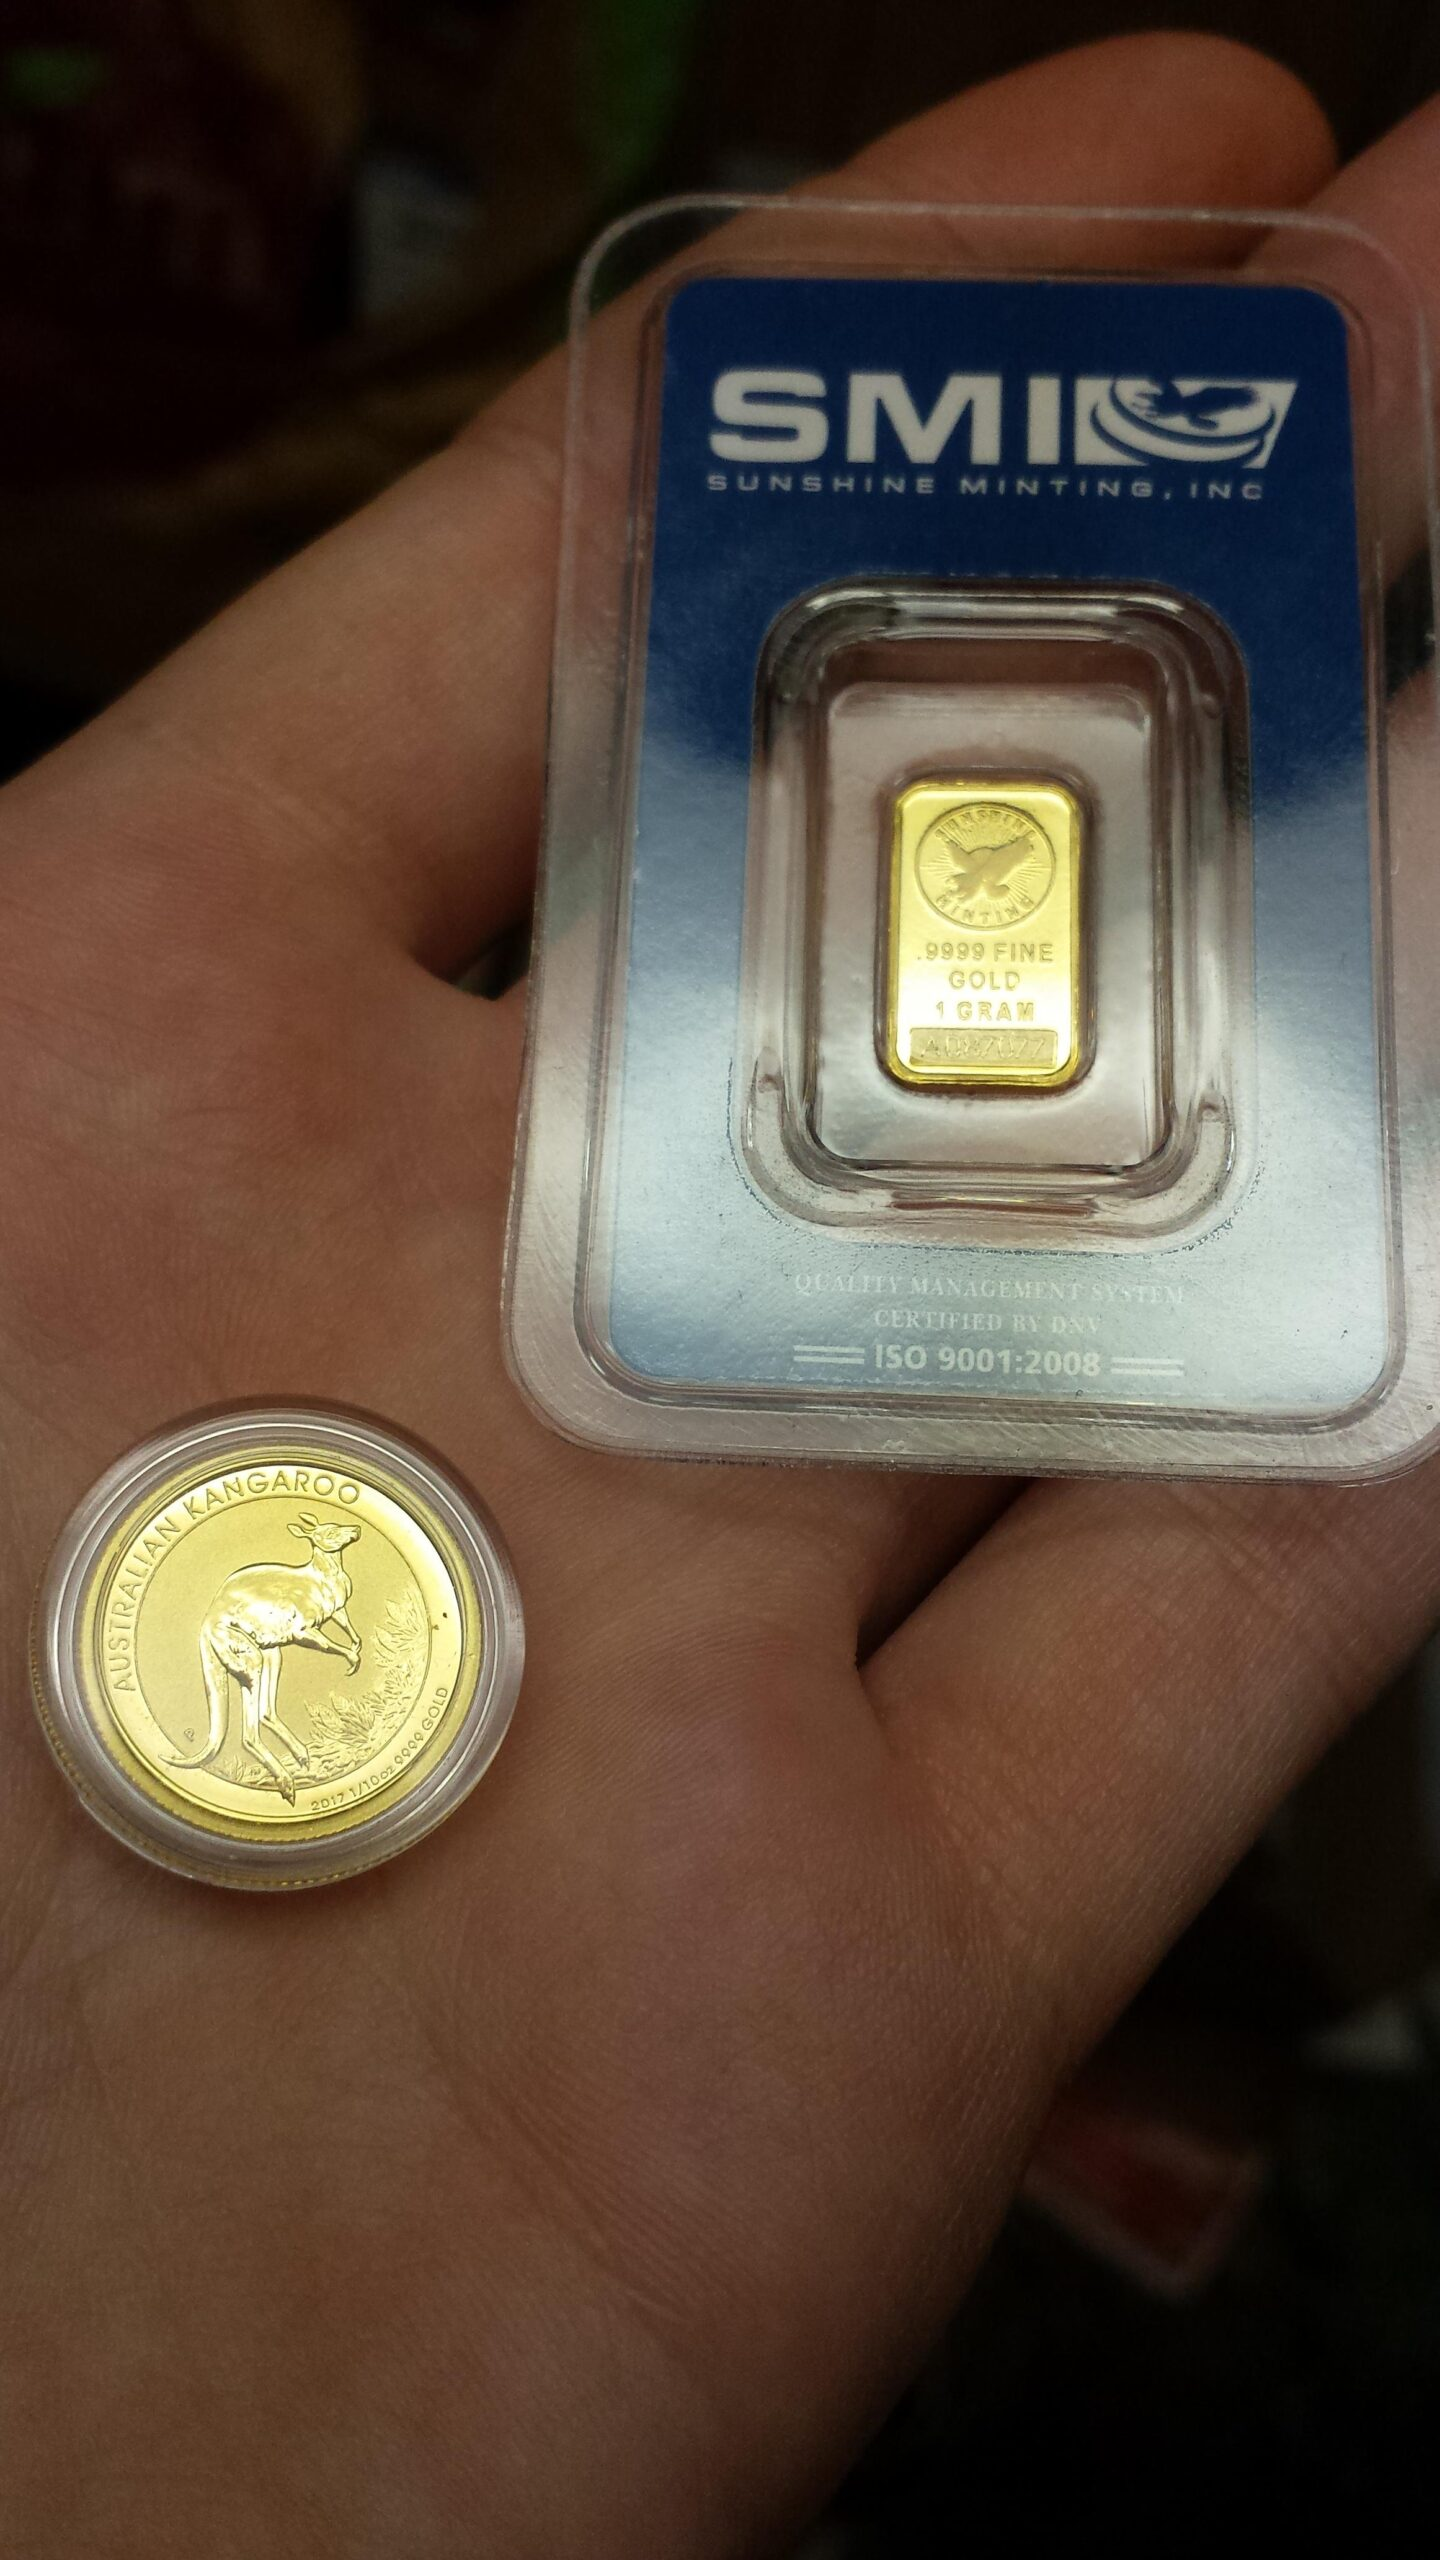 Gold is a very good one to have. Can't believe how much wealth can be so smol. Likeasumboodeee